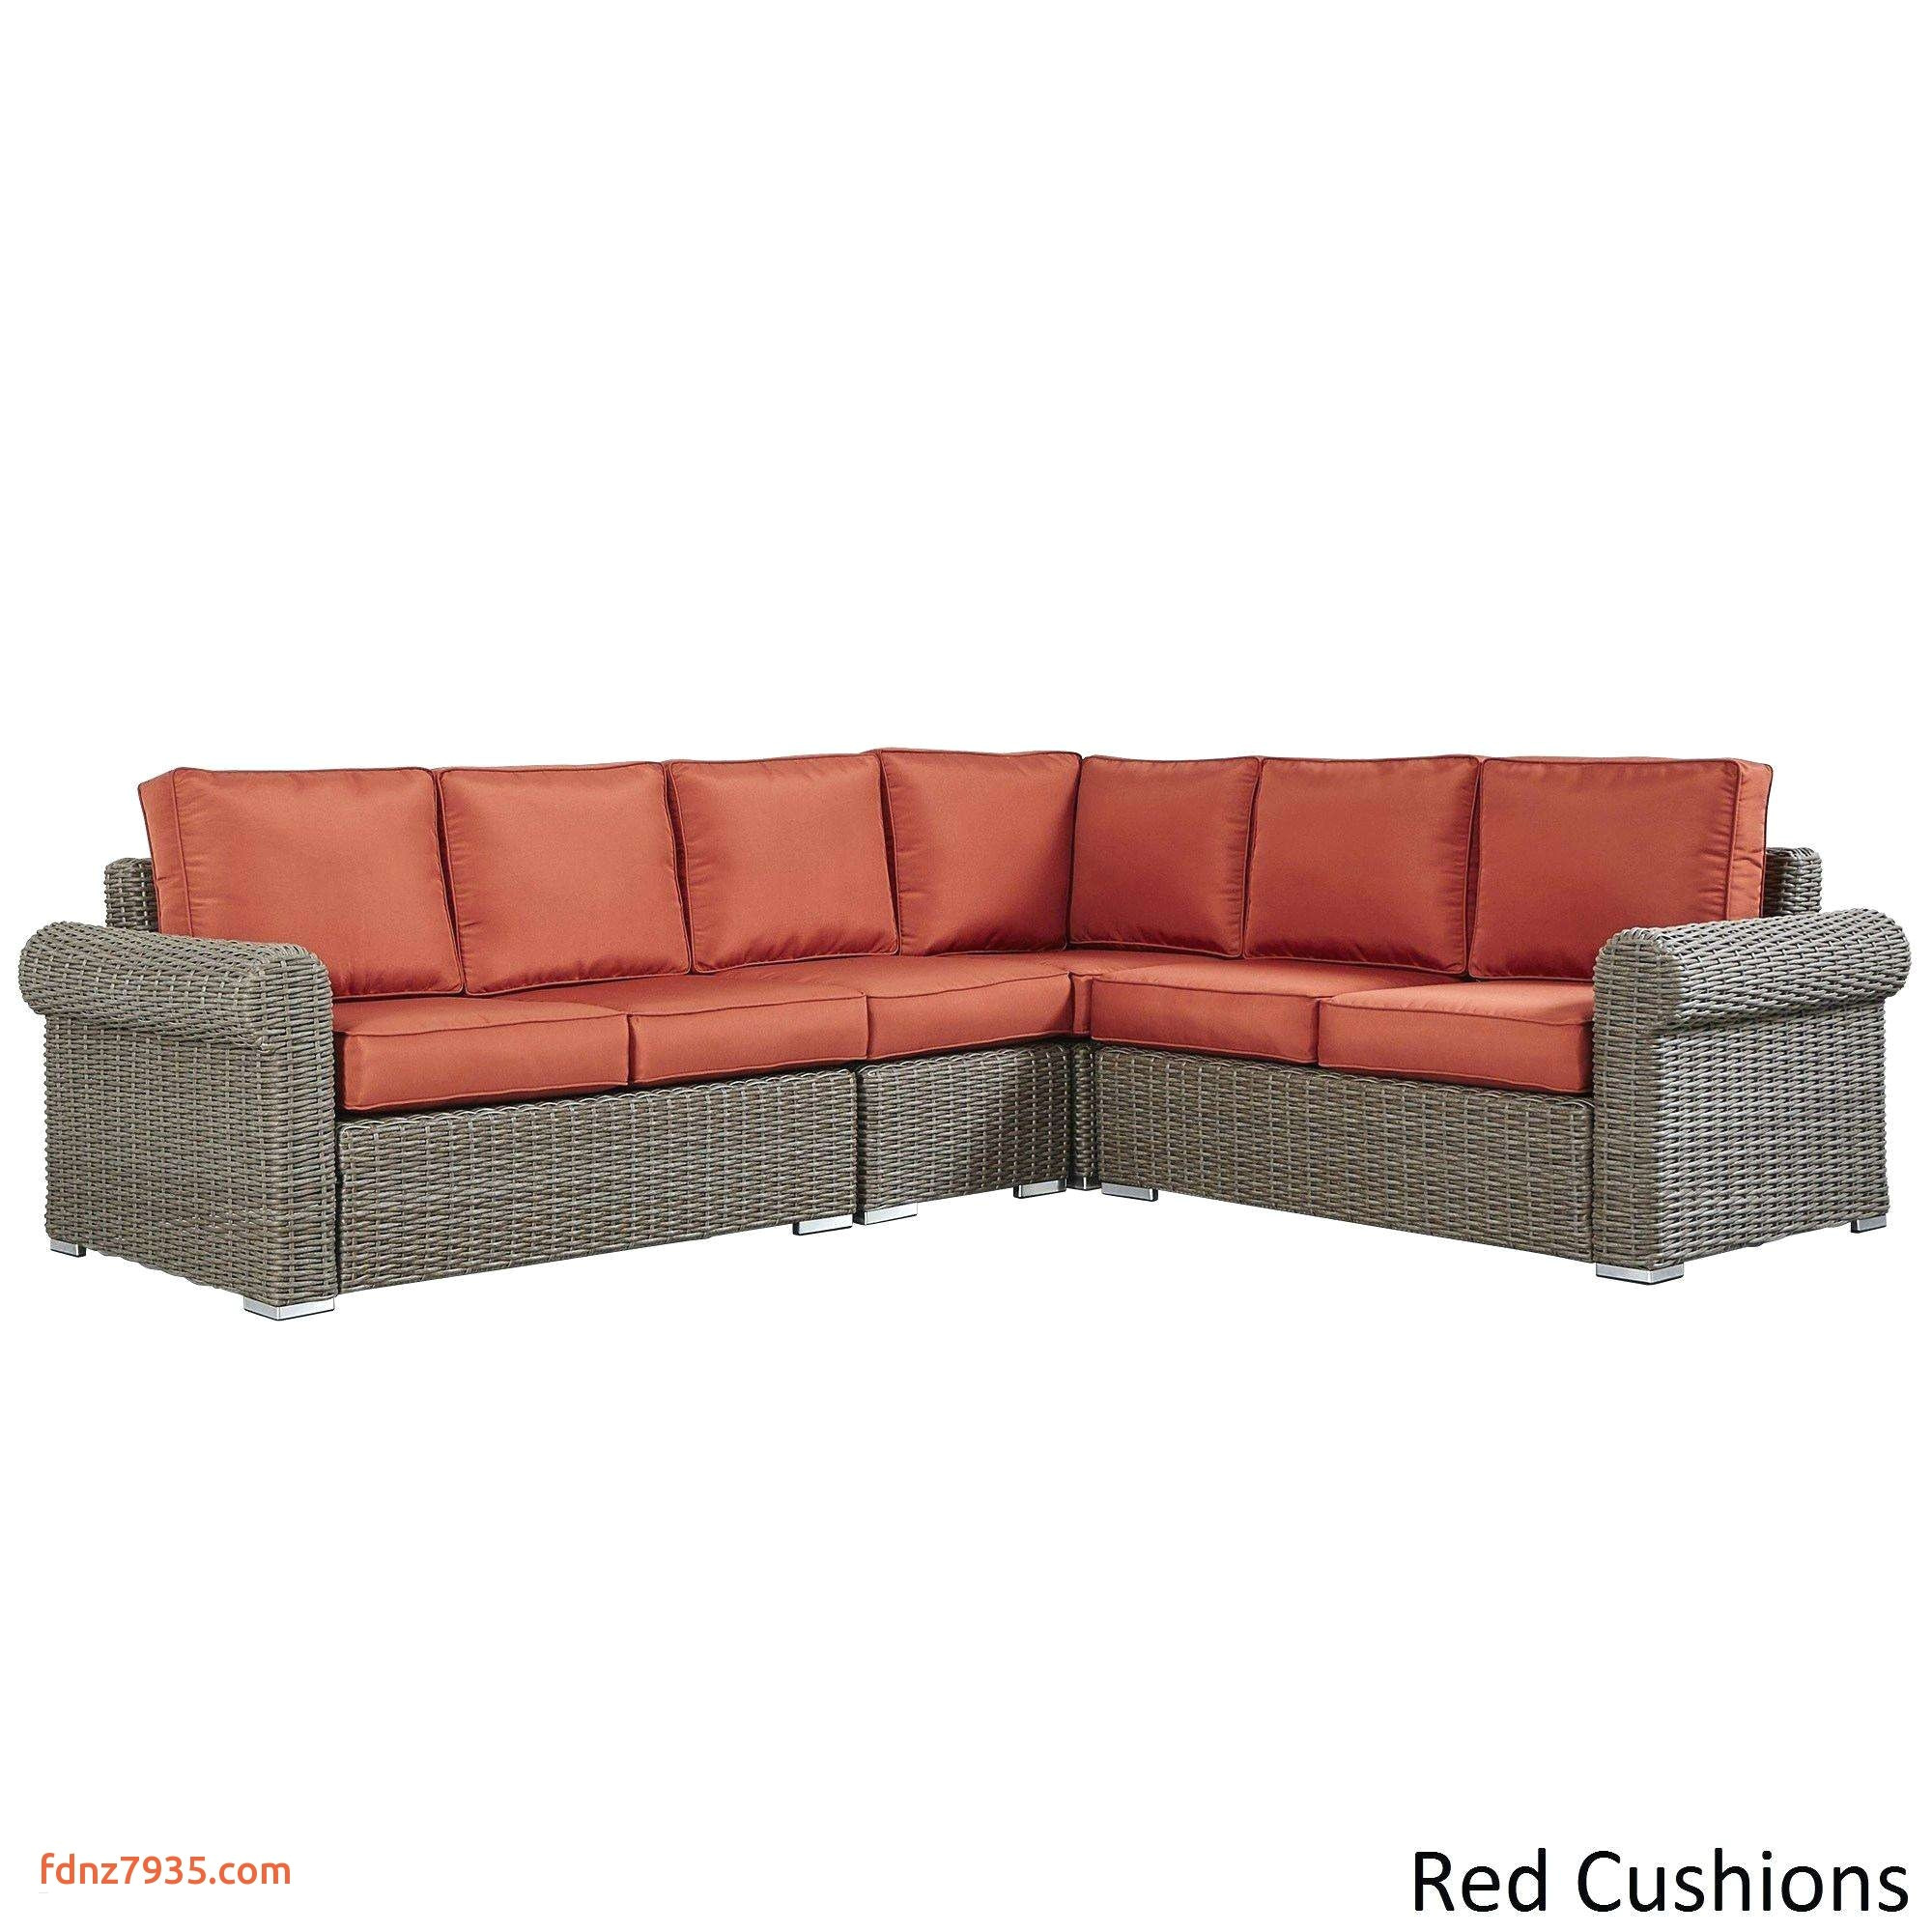 cushions for outdoor furniture unique wicker outdoor sofa 0d patio chairs sale replacement cushions